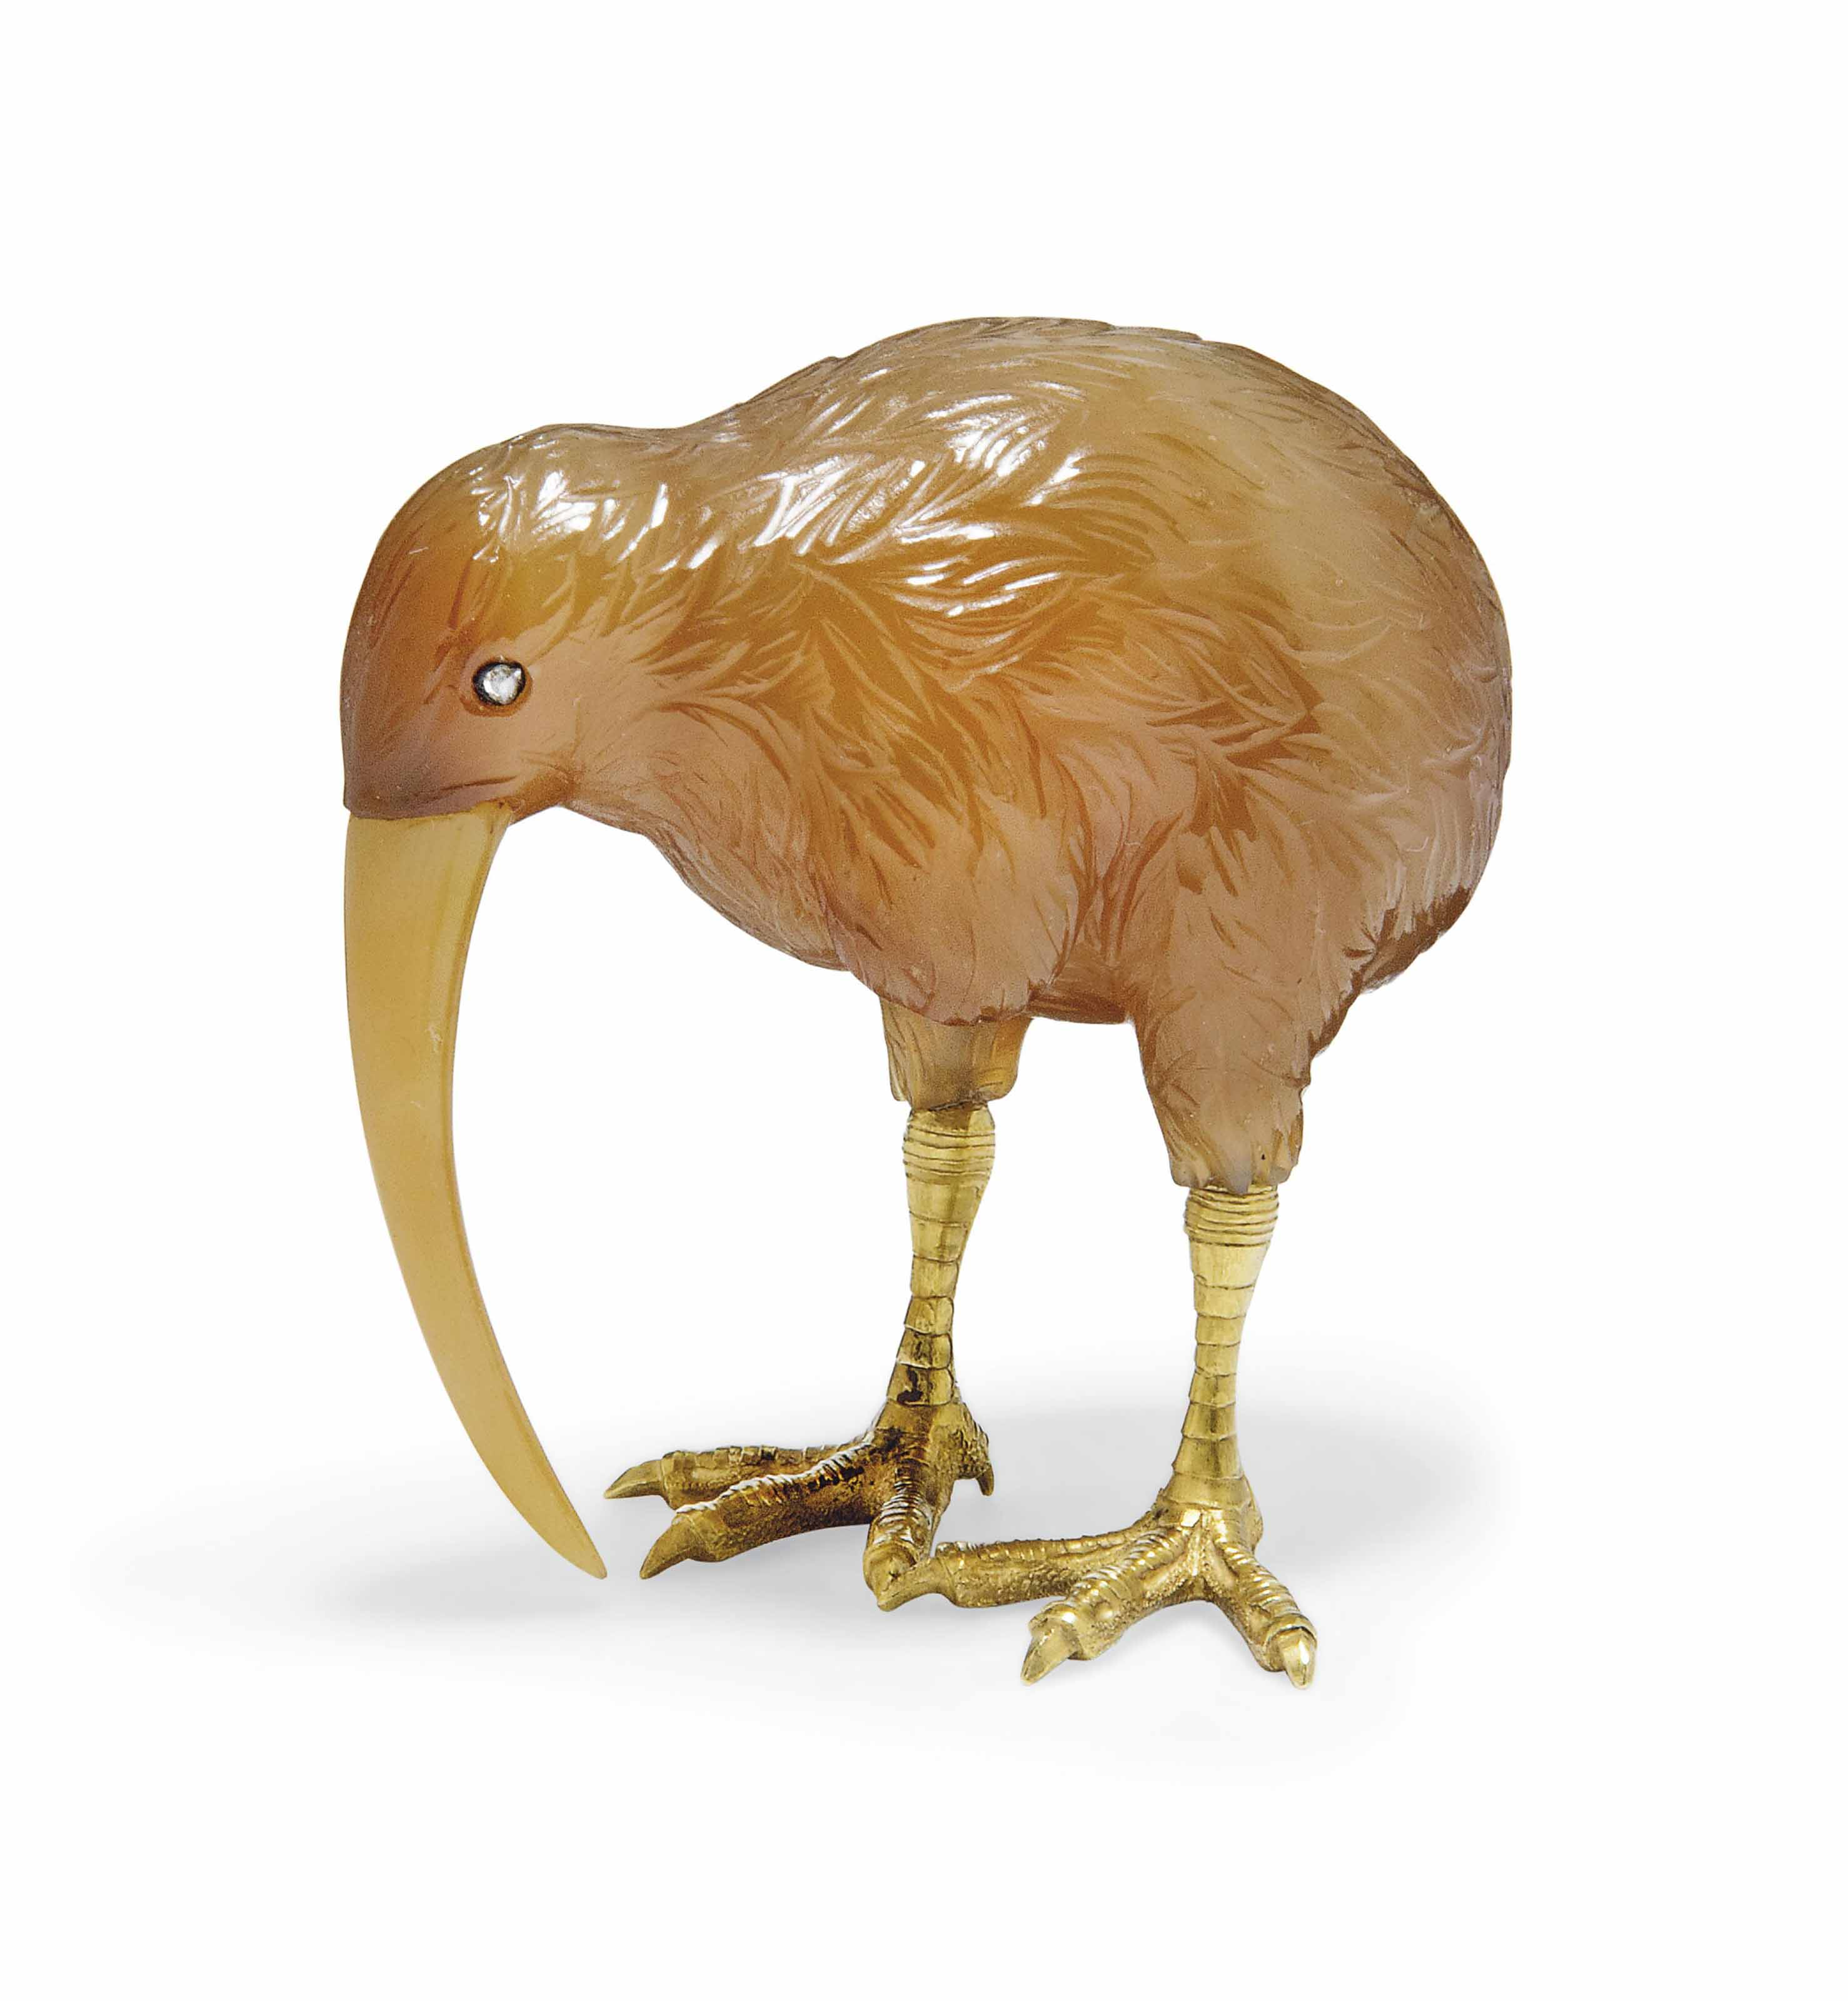 A CARVED AGATE MODEL OF A KIWI WITH GILT MOUNTS AND GEM-SET EYES